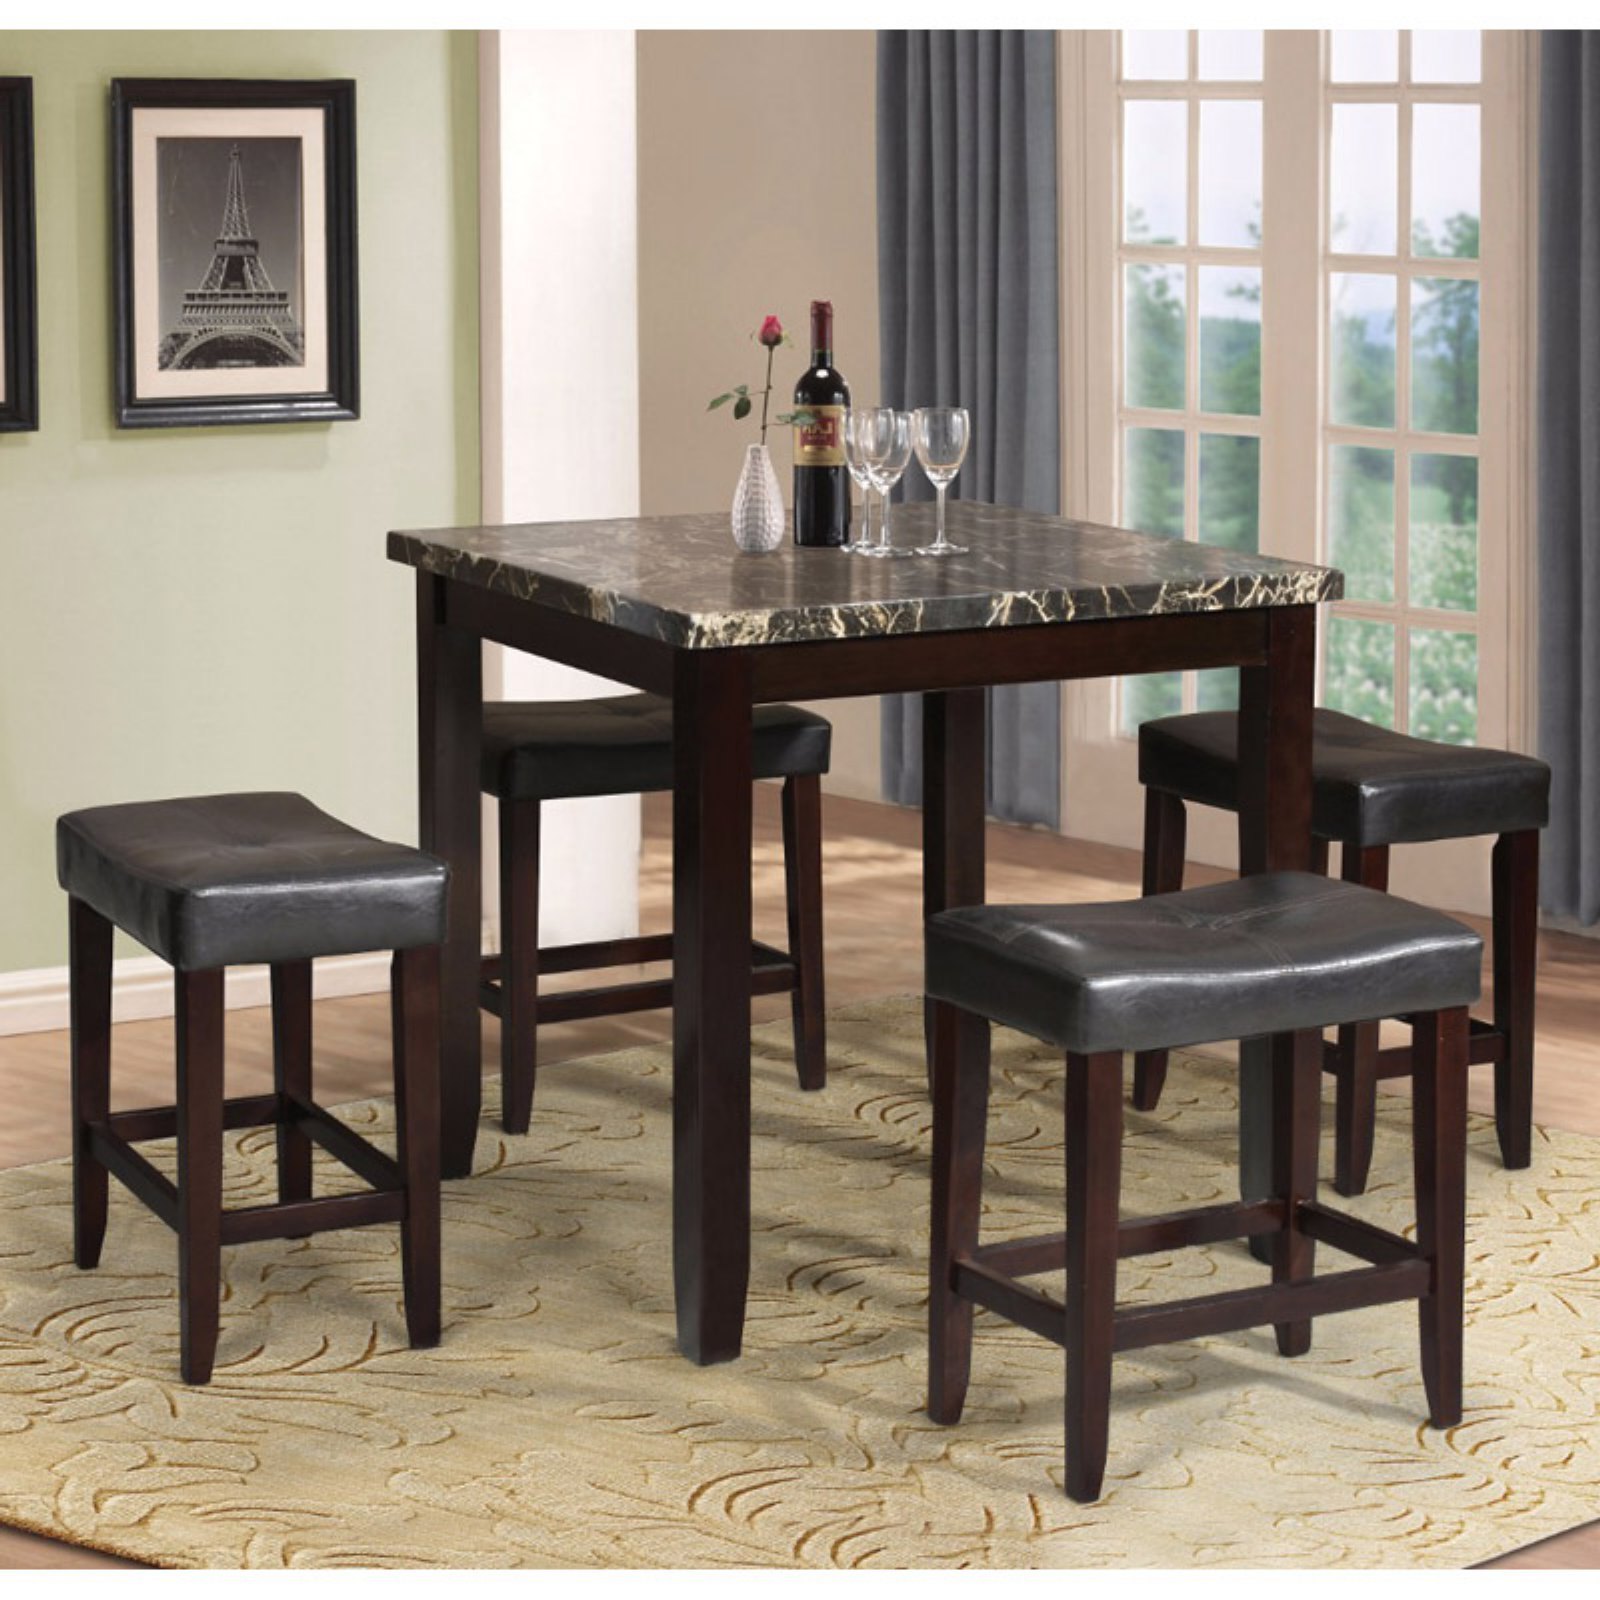 Berrios 3 Piece Counter Height Dining Sets Inside Famous Benzara Modish 5 Piece Faux Marble Counter Height Dining Table Set (View 14 of 25)